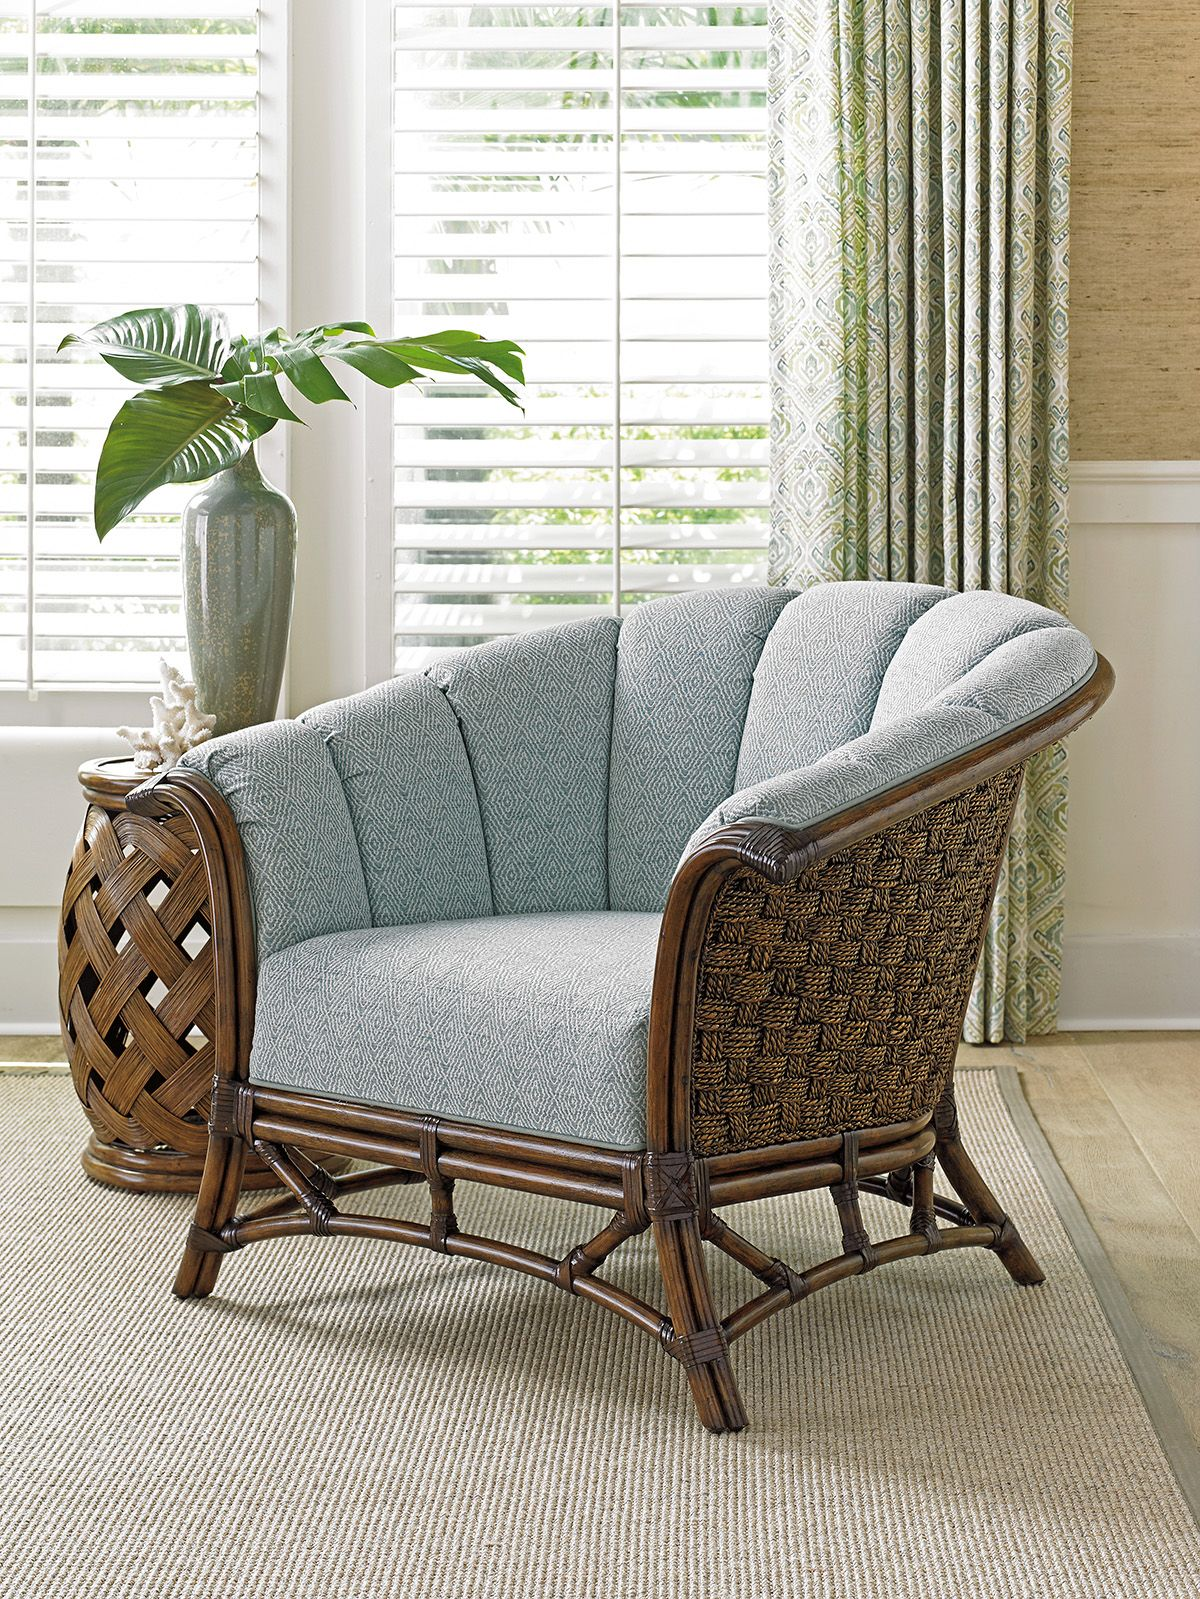 Twin palms sunset key chair tommy bahama home take a seat in